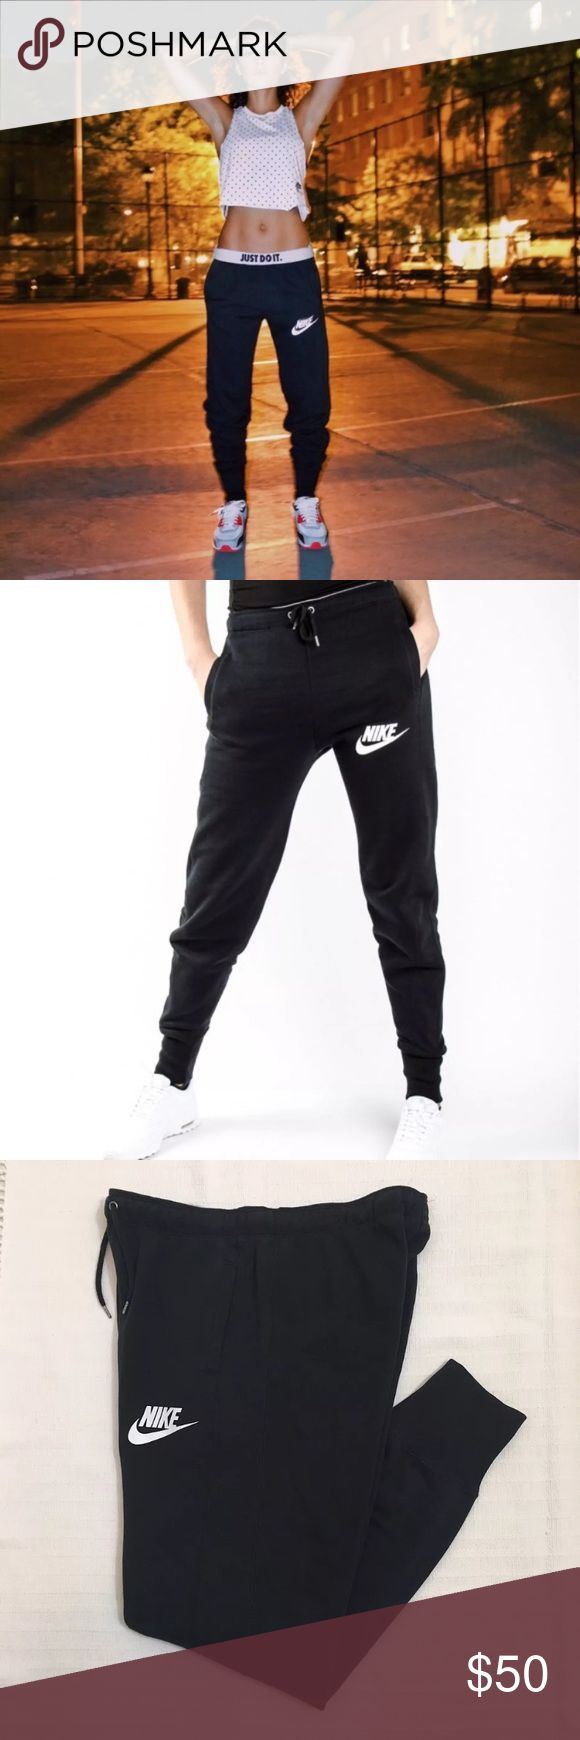 Women's Nike Black Rally Jogger Sweatpants Women's Nike Black Rally Jogger Sweatpants will keep you warm and cozy. Their cotton blend and brushed interior create a soft, comfortable feel, while the profile gives these pants a streamlined look. Materials: 80% cotton, 20% polyester Style/Color: 849008-010  • Women's size Medium  • NEW with tags • No trades •100% authentic Nike Pants Track Pants & Joggers